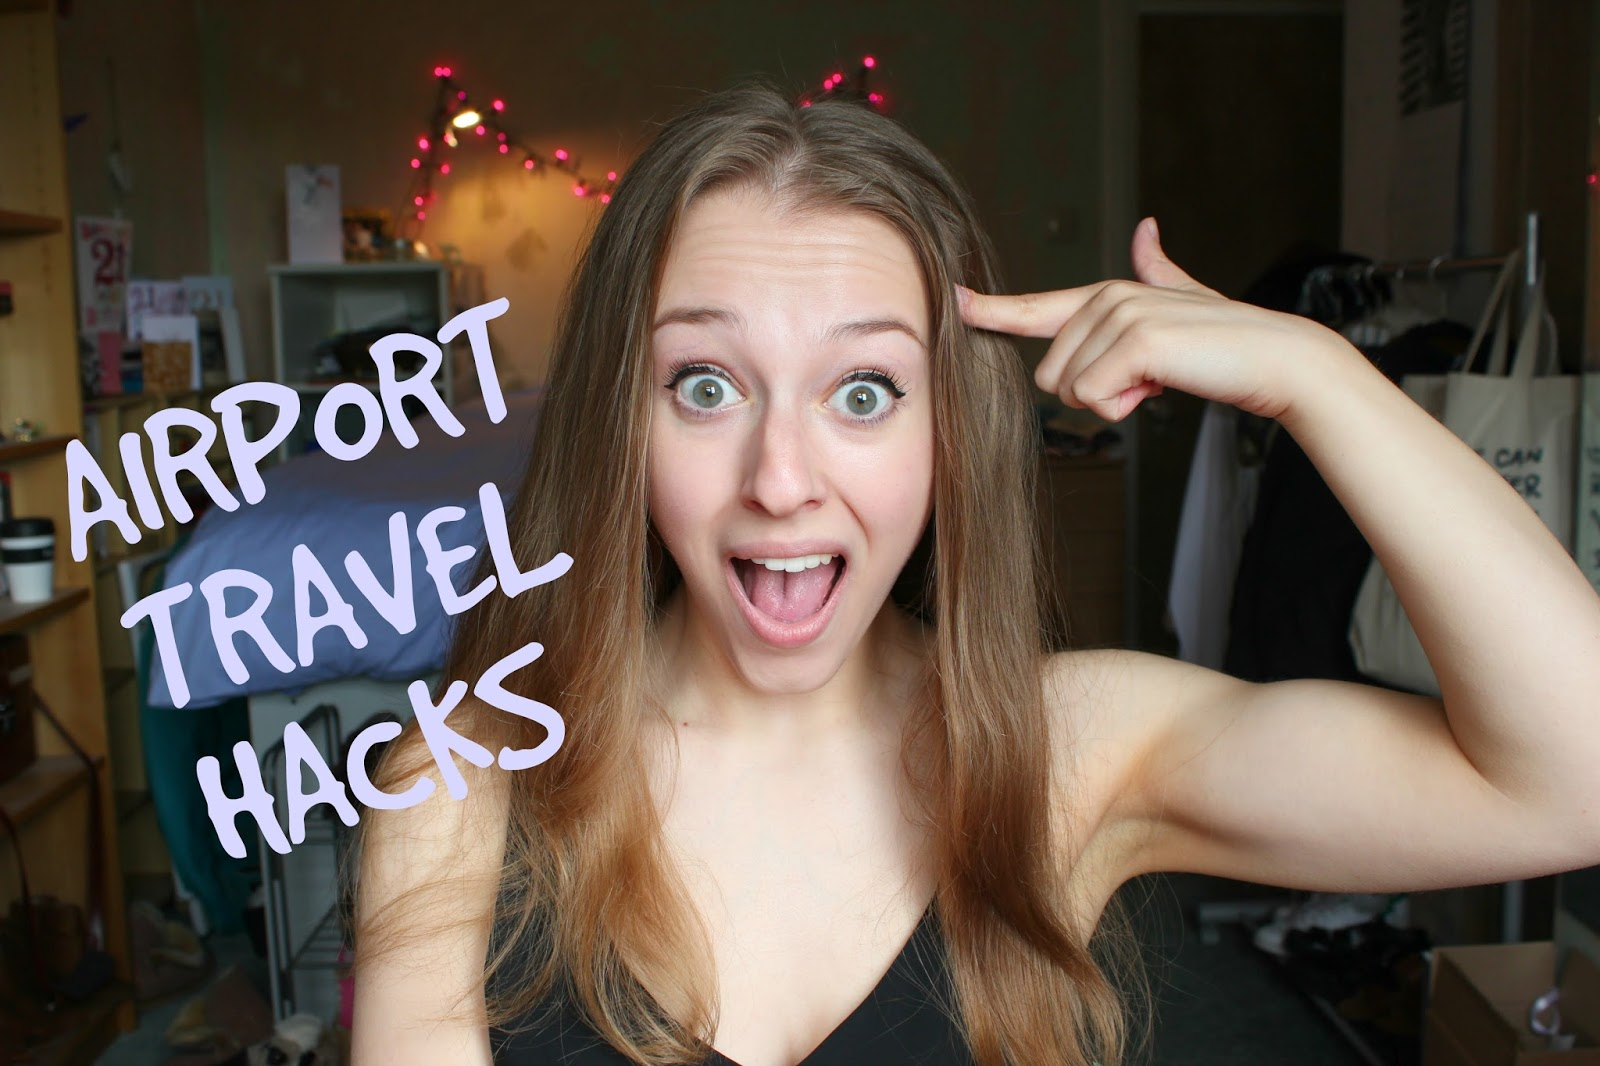 Airport Travel Hacks